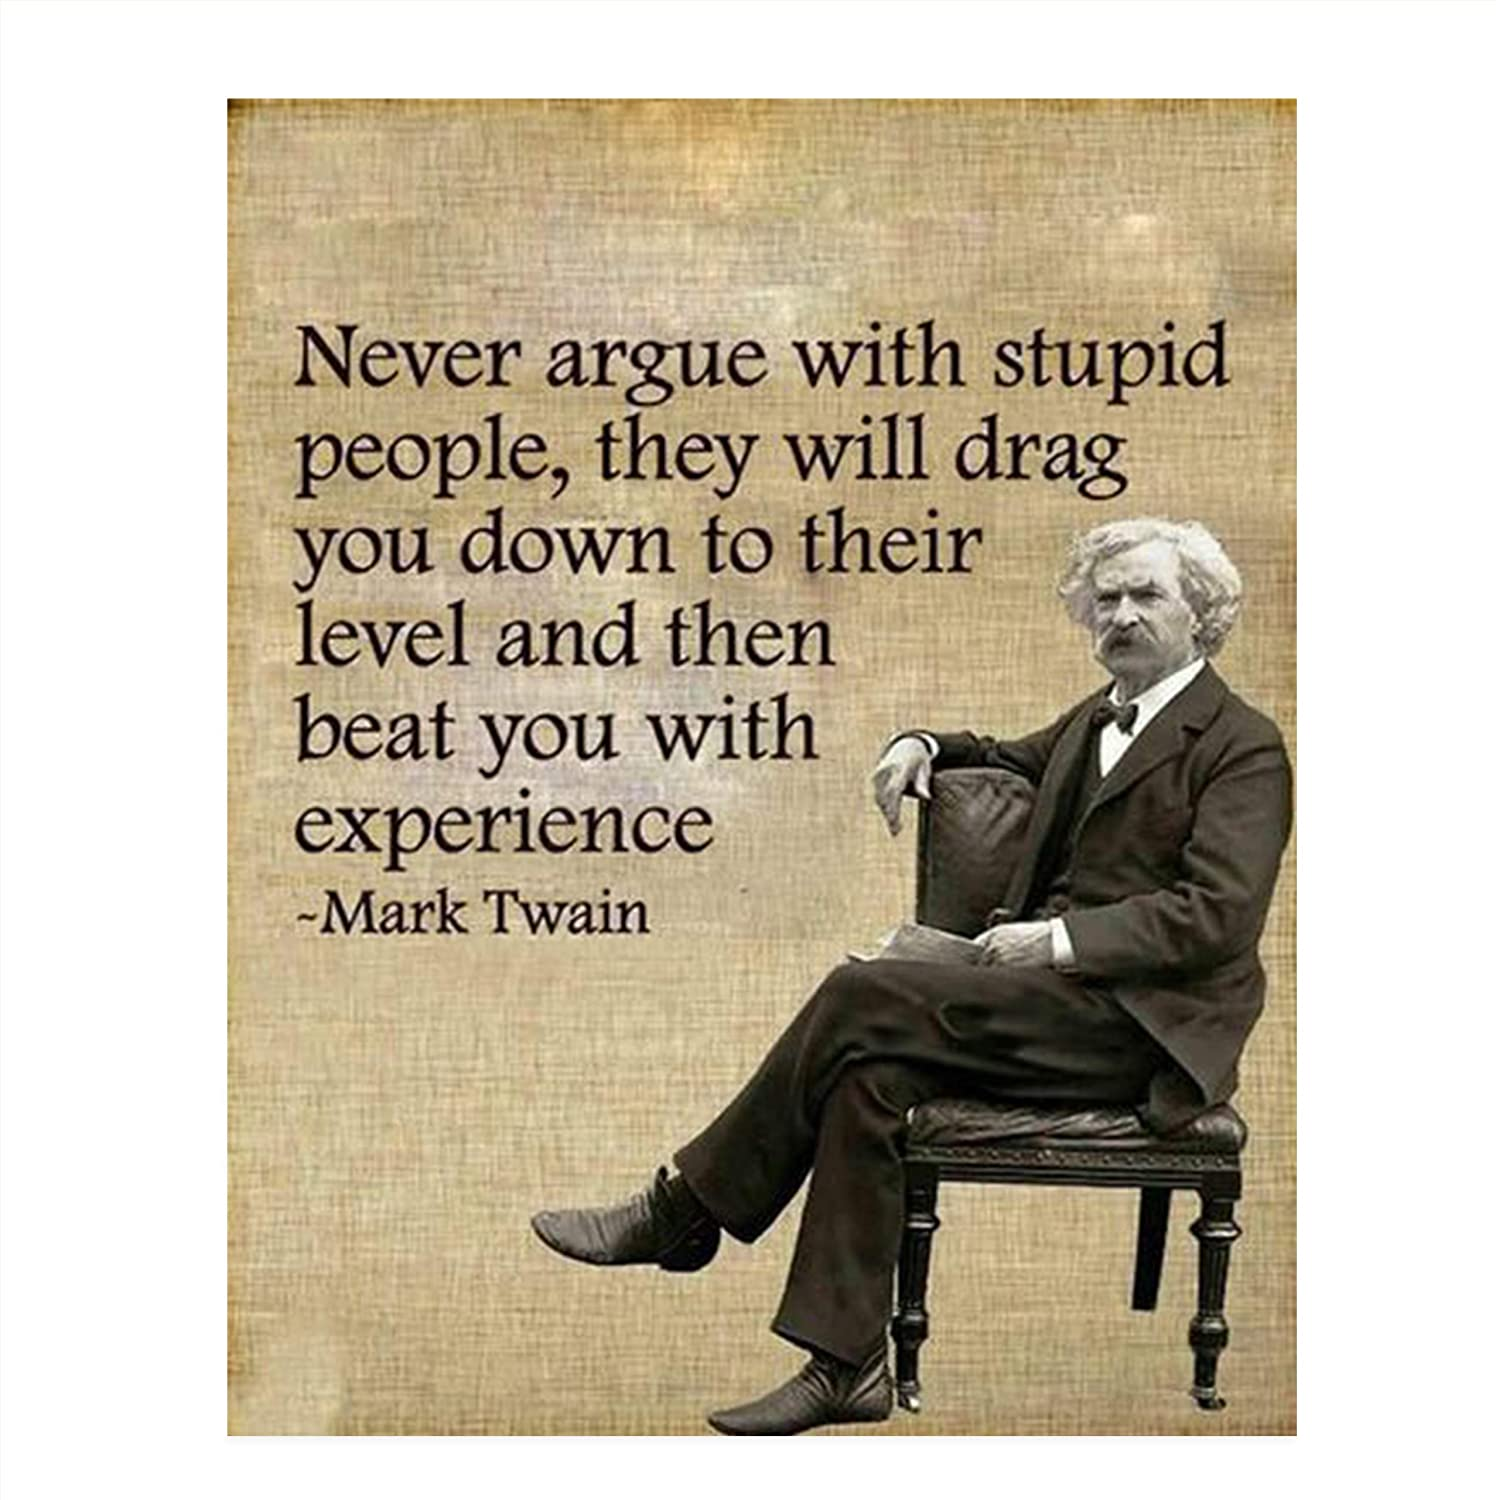 Amazon Com Mark Twain Funny Quotes Wall Art Never Argue With Stupid People 8 X 10 Typographic Portrait Print Ready To Frame Retro Home Office Man Cave Bar Garage Decor Perfect Gift Humorous Decoration Handmade